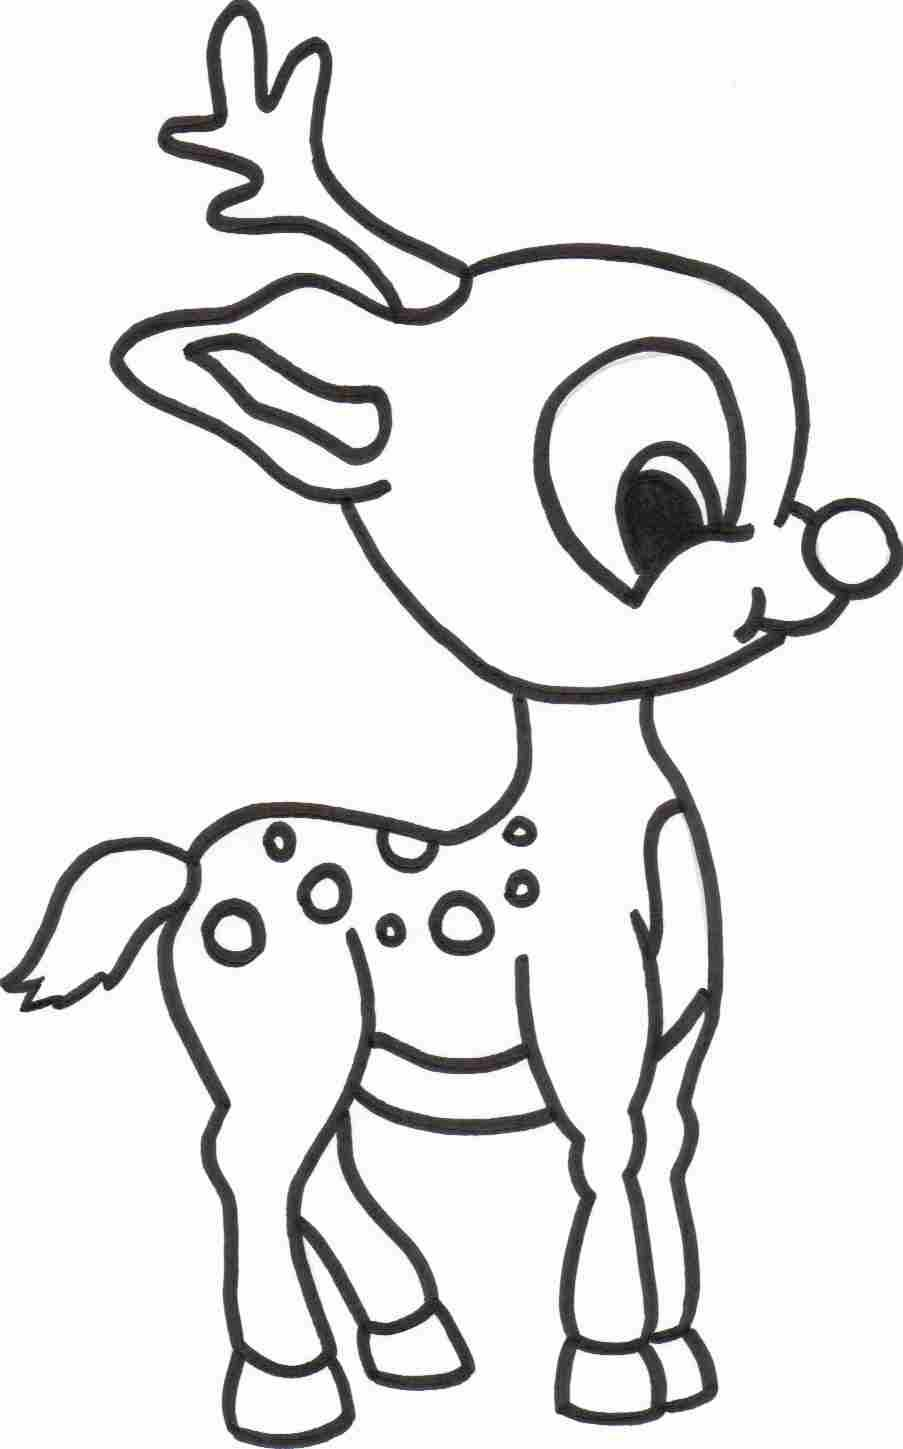 Easy Christmas Coloring Pages For Adults With Free Printable Reindeer Kids Sketch Pinterest